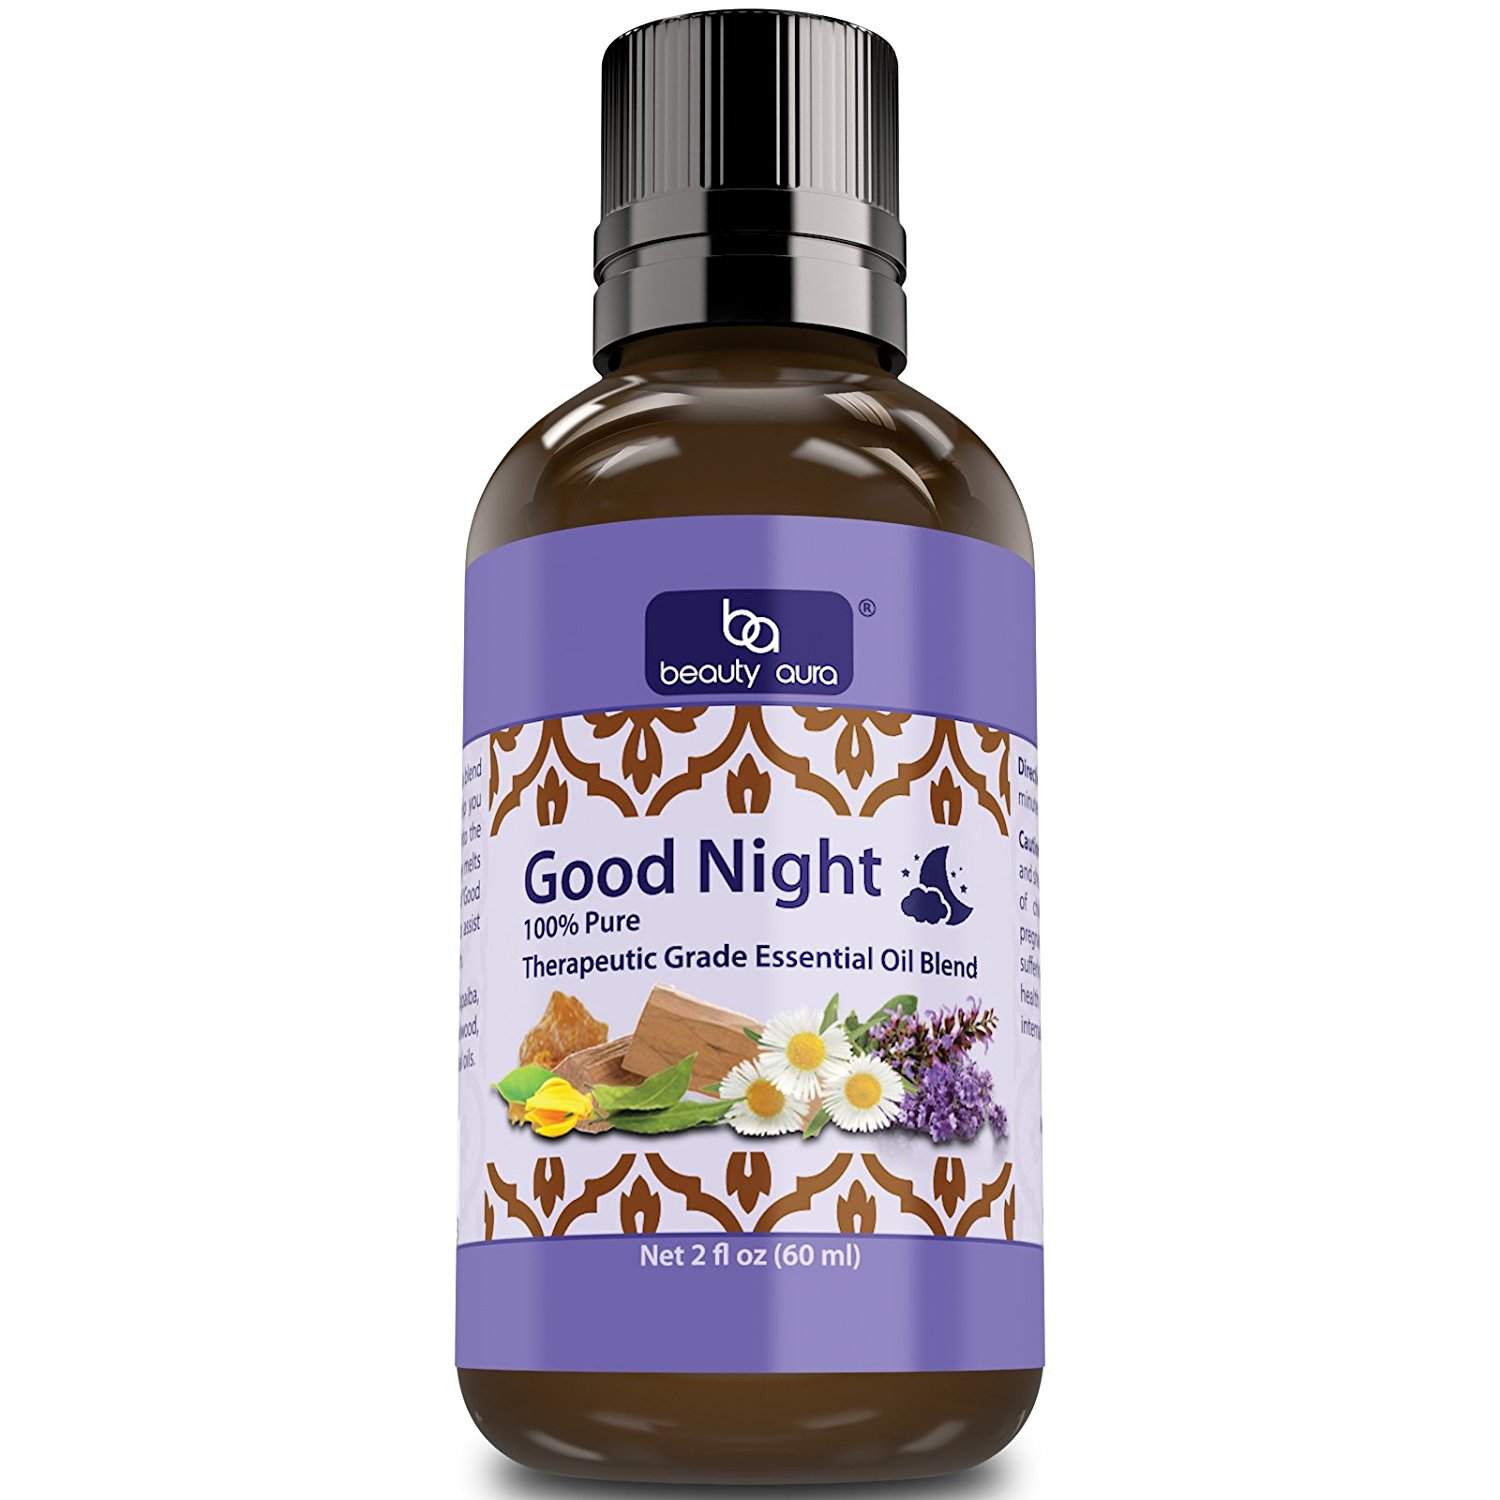 Beauty Aura Good Night Essential Oil Blend (2 Oz) - Carefully picked essential oils blend to promote restful sleep